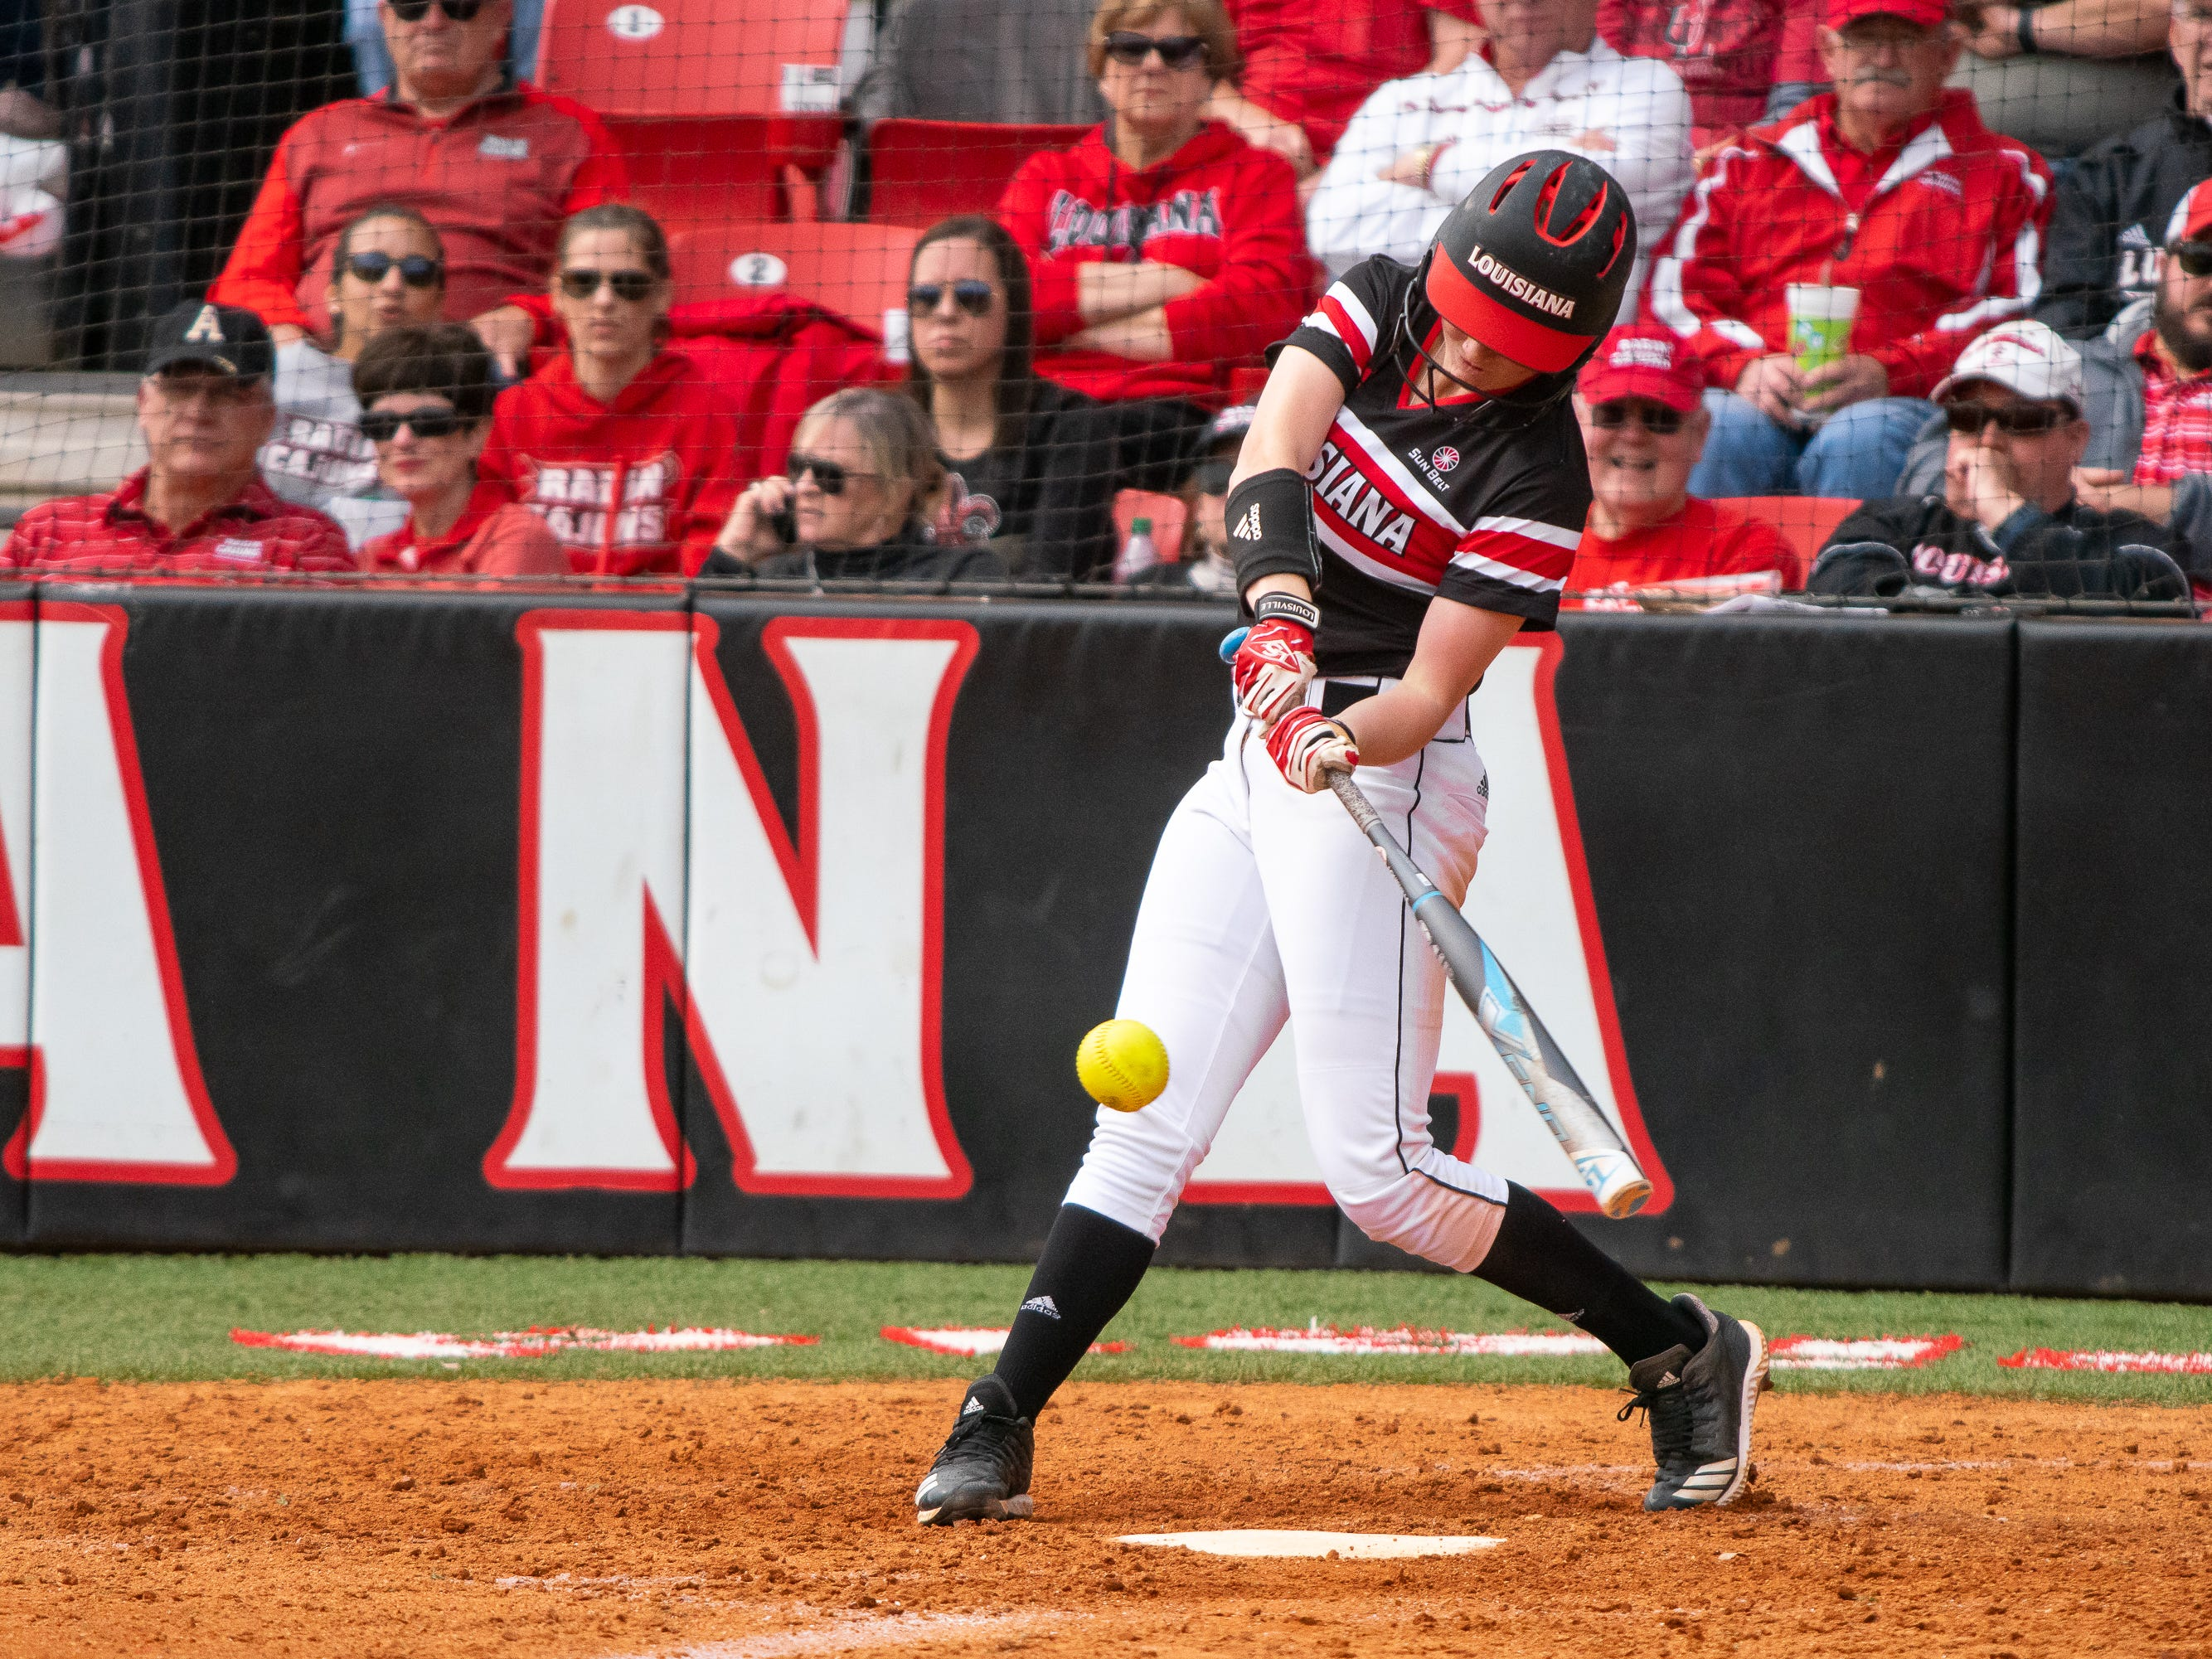 UL's Julie Rawls makes contact with the incoming ball as the Ragin' Cajuns take on the Troy Trojans at Yvette Girouard Field at Lamson Park on Saturday, March 16, 2019.